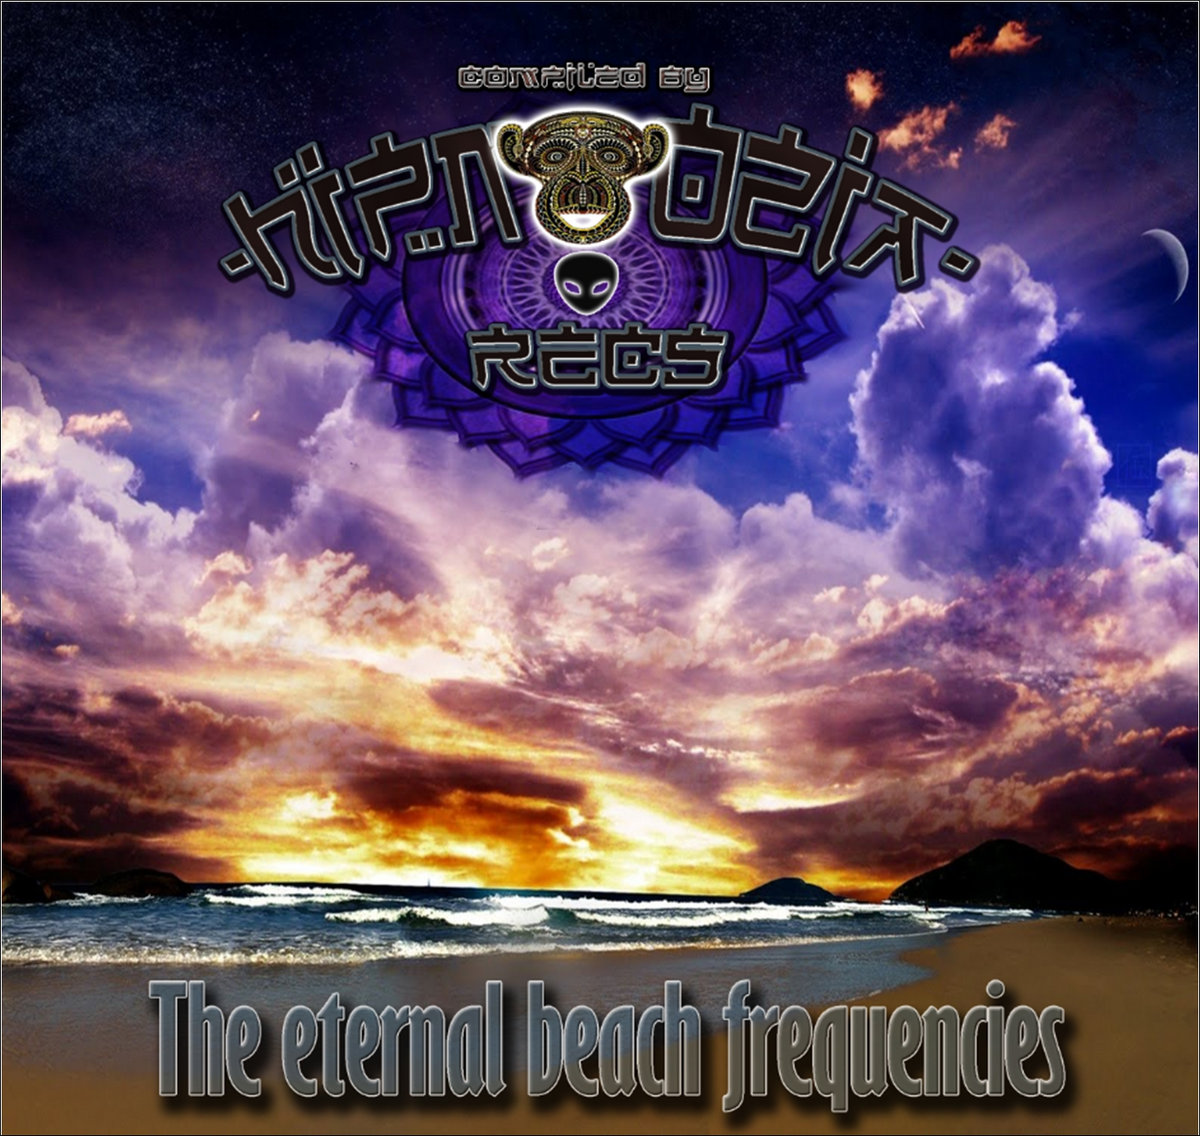 The eternal beach frequencies - Compiled by Hipnozia recs